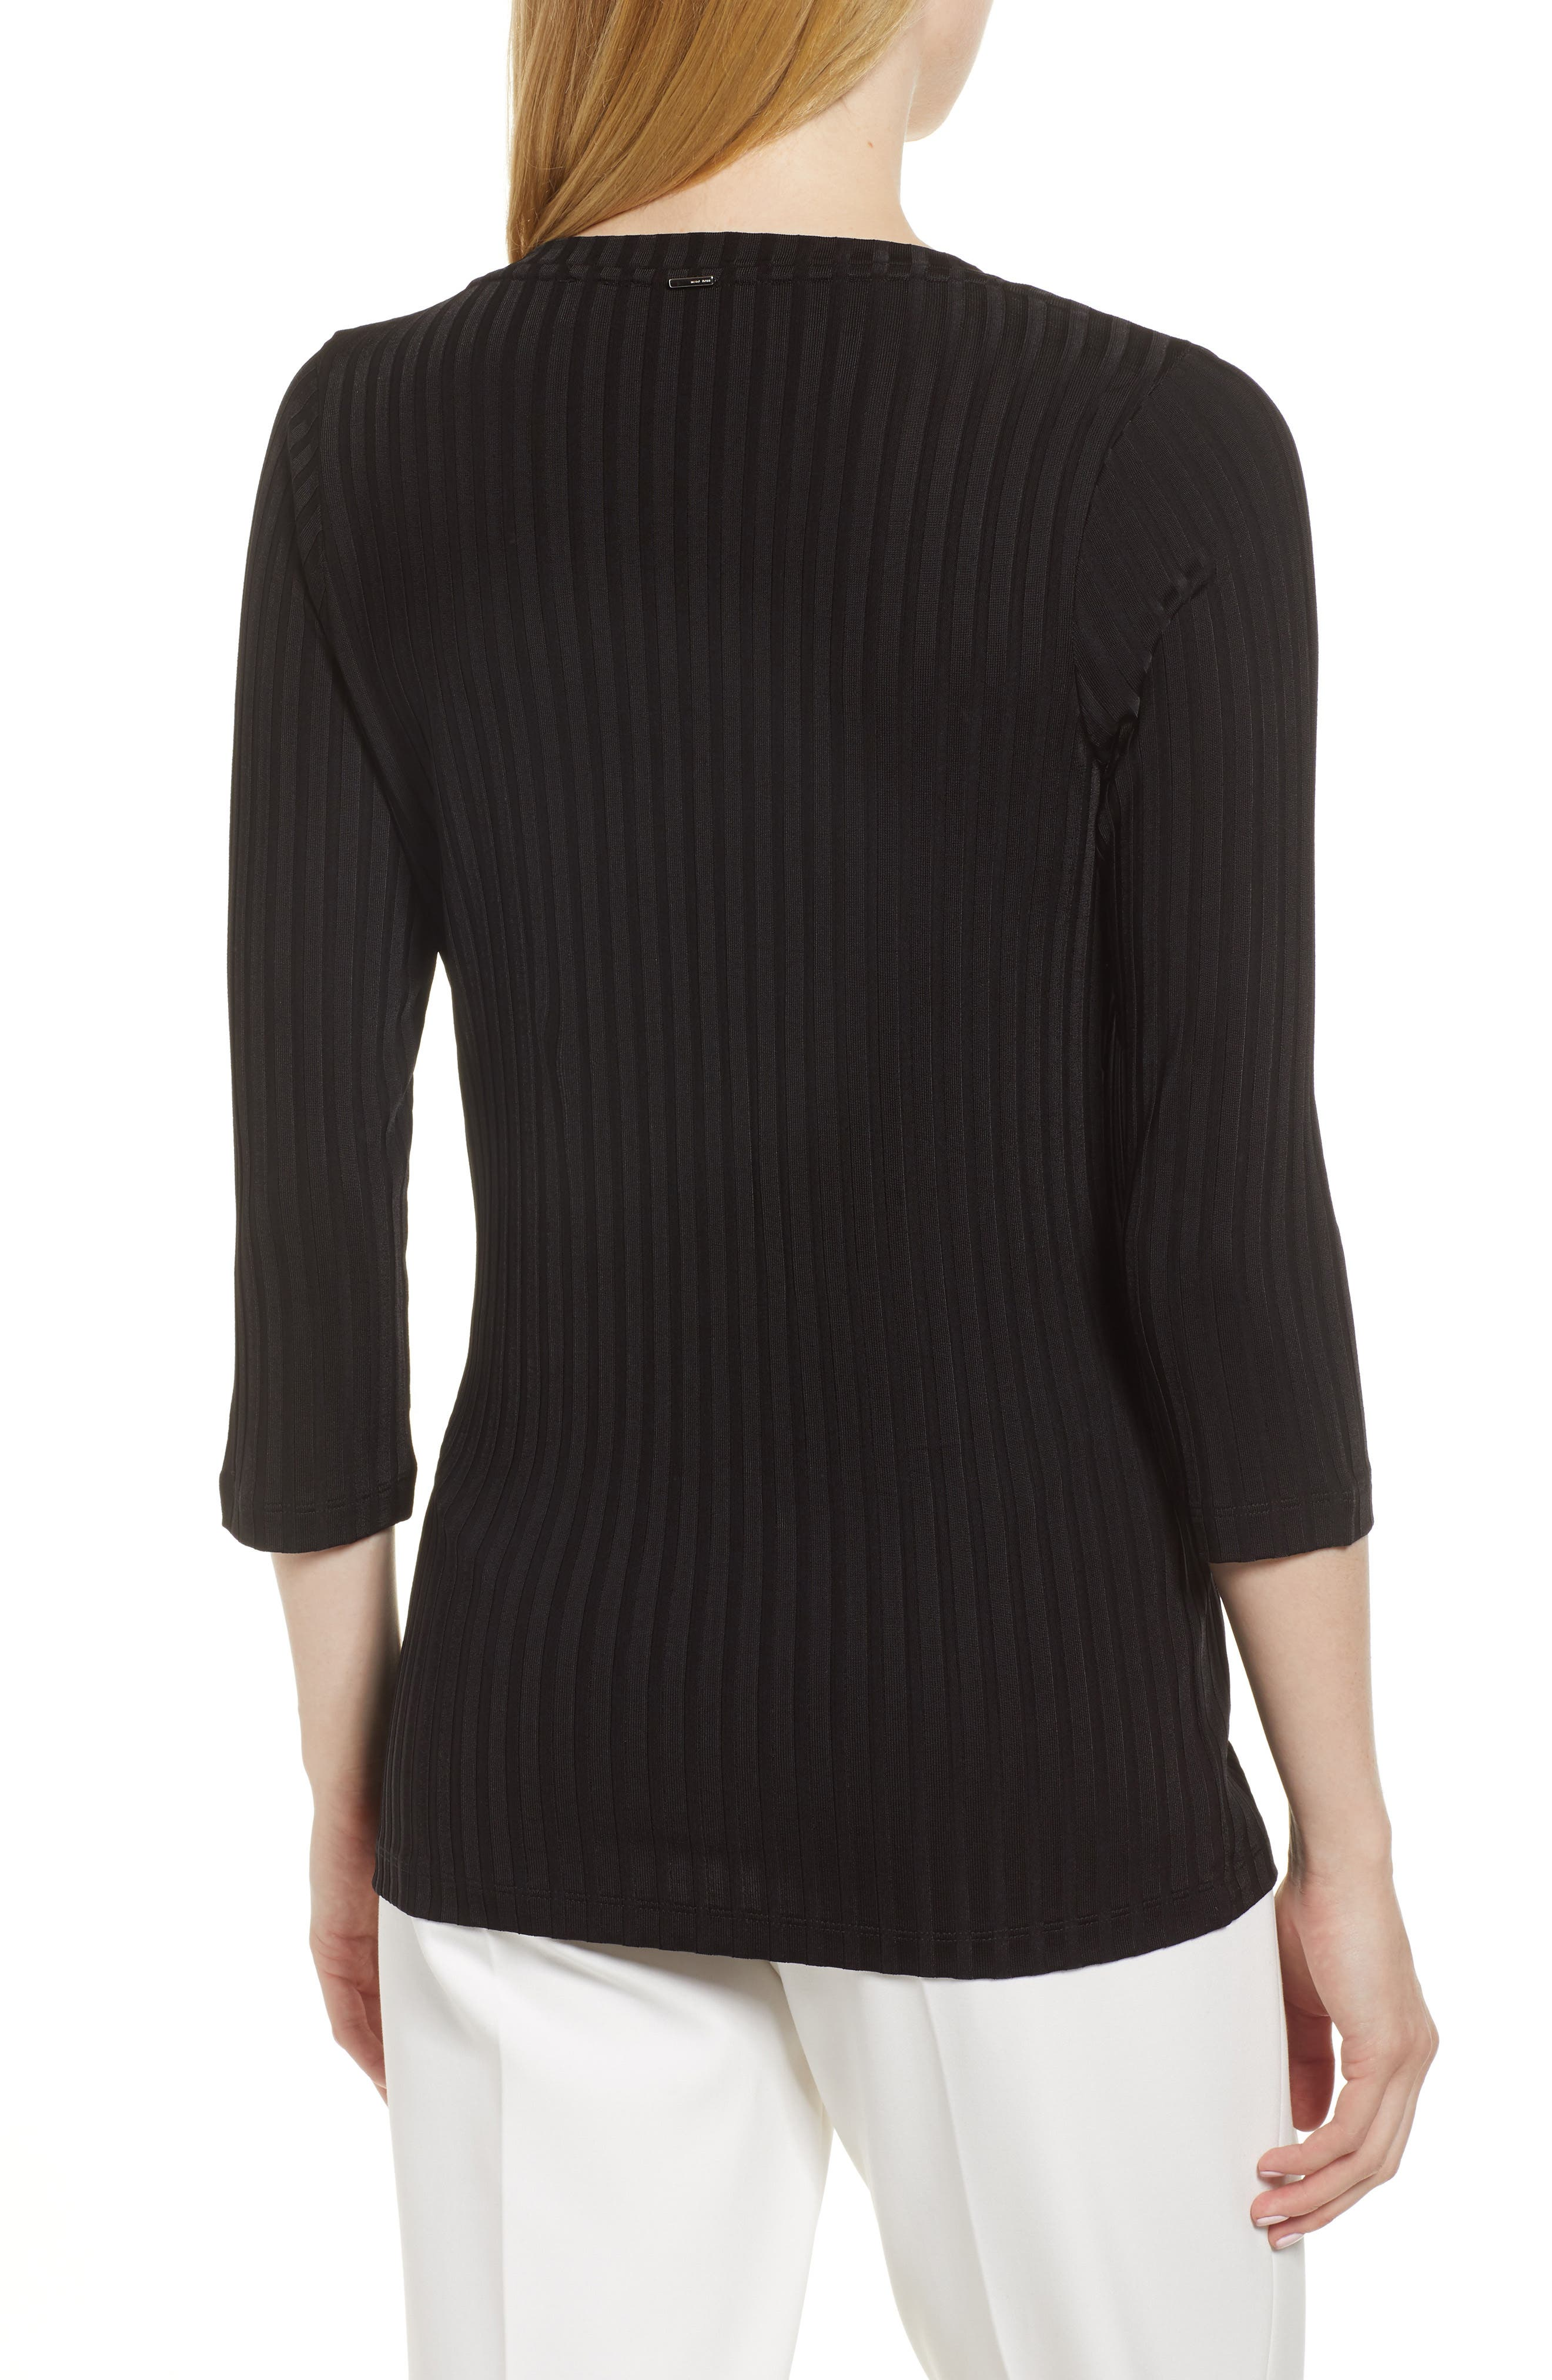 Etrica Ribbed Sweater,                             Alternate thumbnail 2, color,                             001